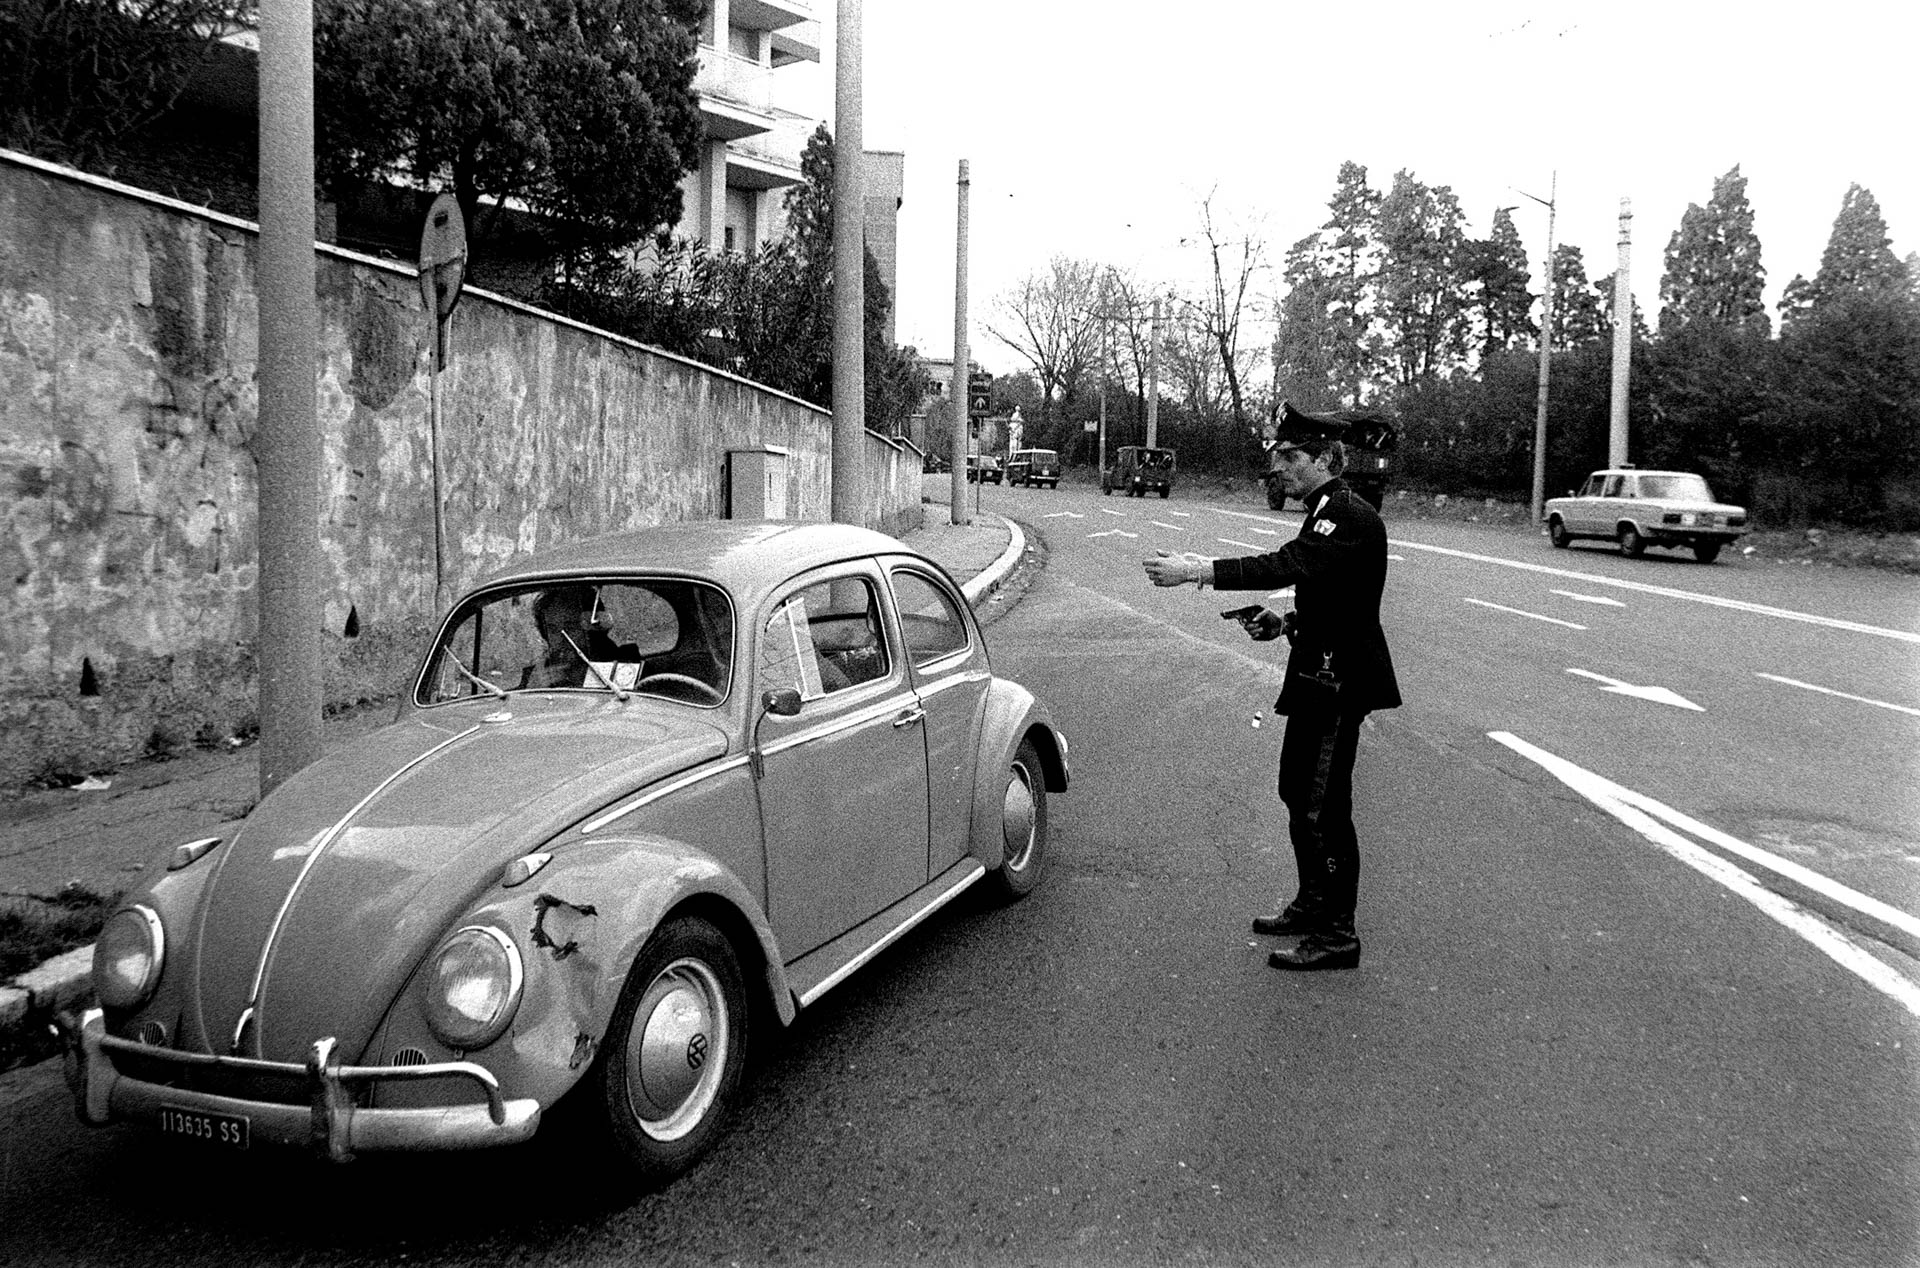 Rome, Italy - 5 May 1978 Controls in the streets of Rome by Italian police after Aldo Moro's kidnapping.